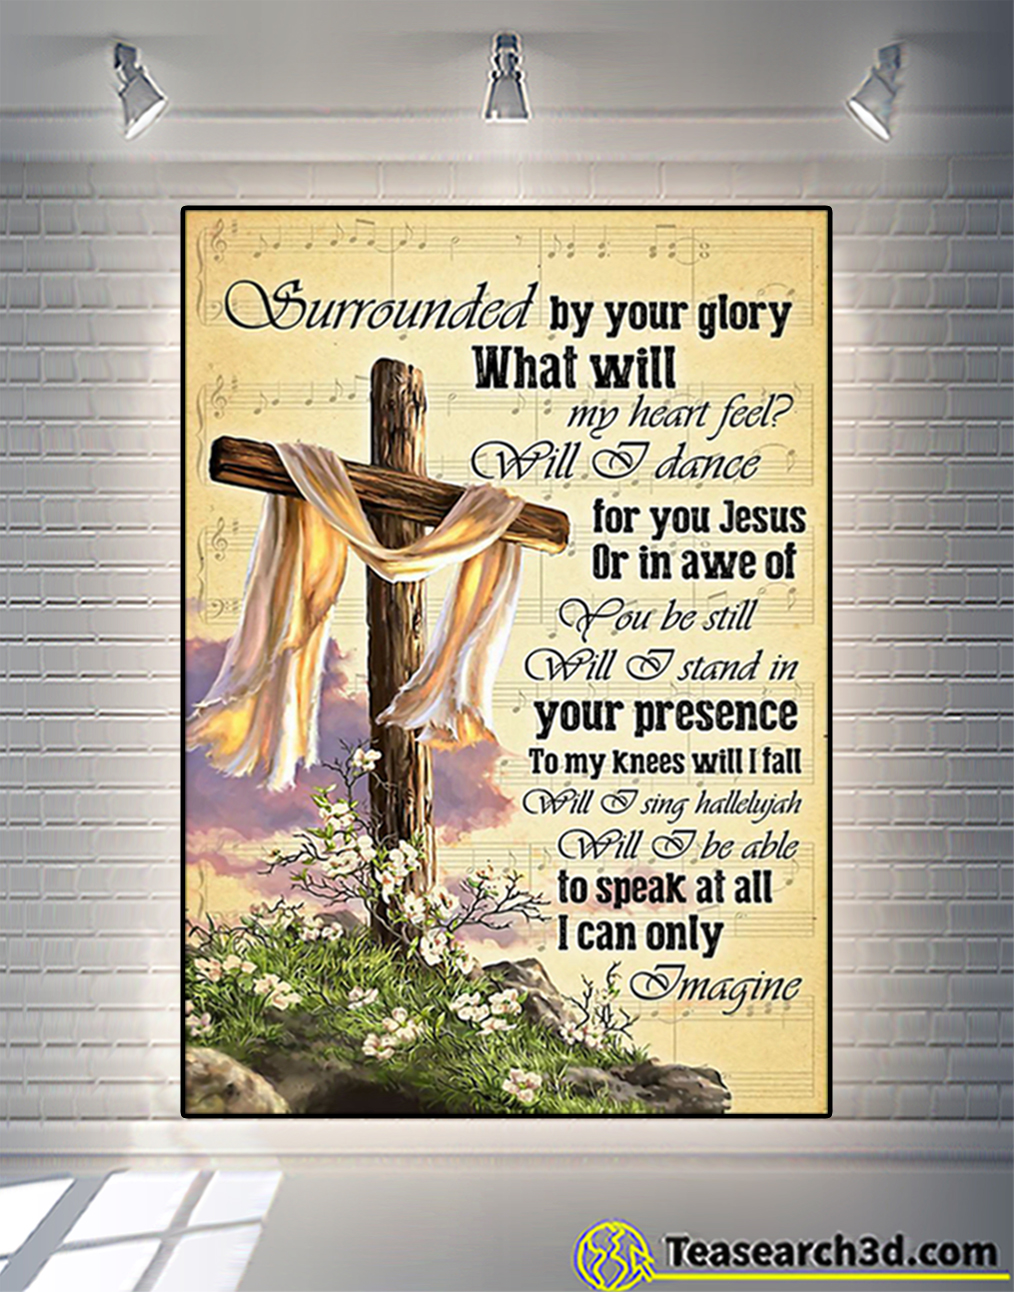 Cross god surrounded by your glory poster